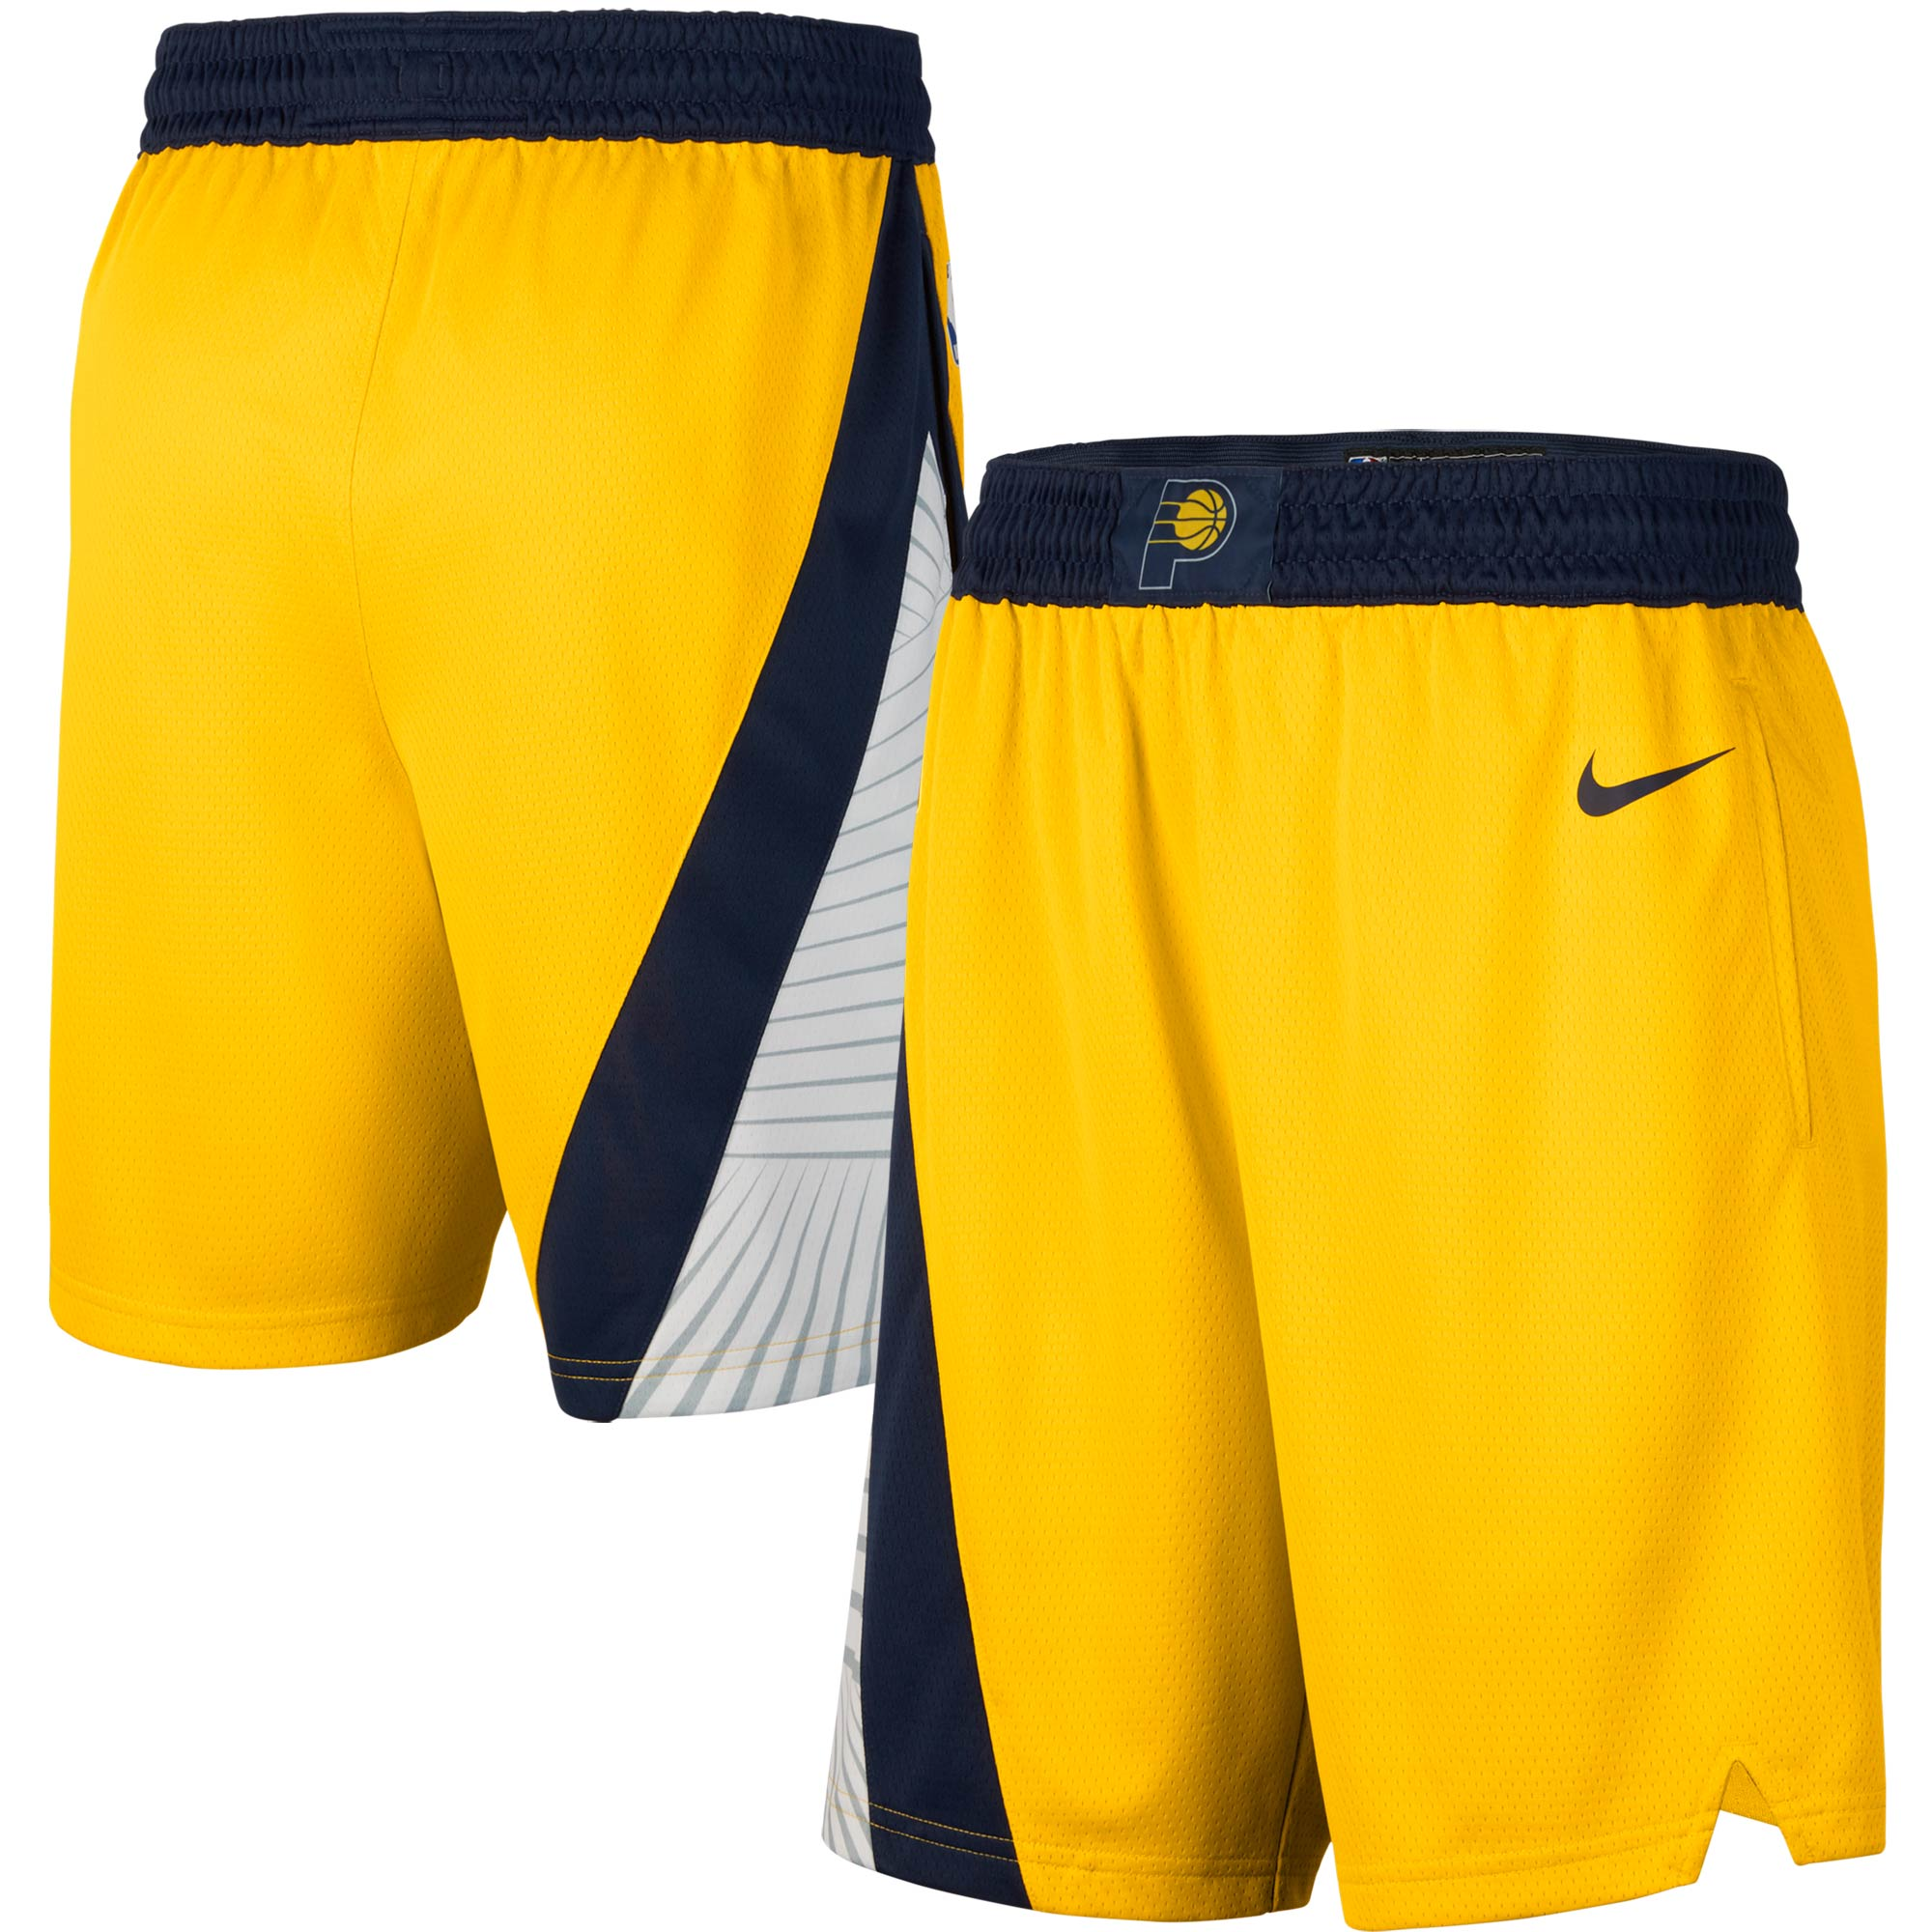 Indiana Pacers Nike 2019/20 Alternate Swingman Shorts - Statement Edition - Gold